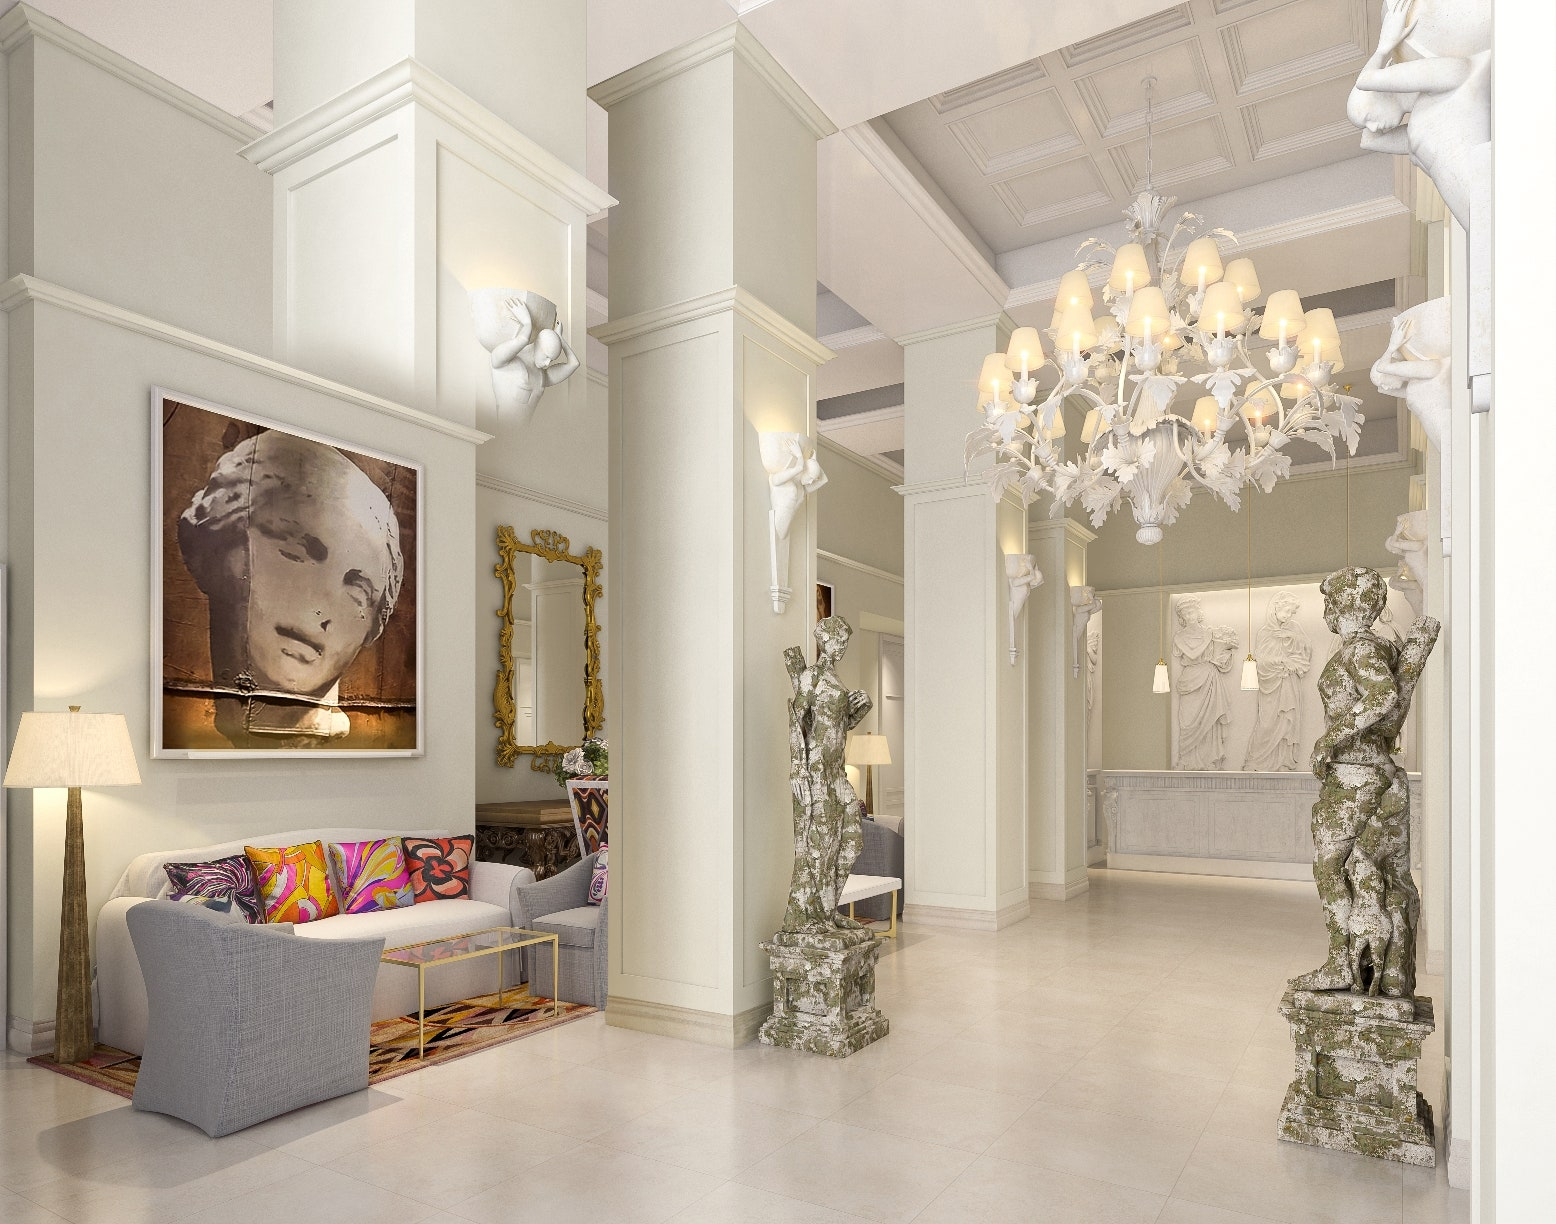 Hotel Savoy Rocco Forte, Florence - lobby designed by Laudomia PUCCI